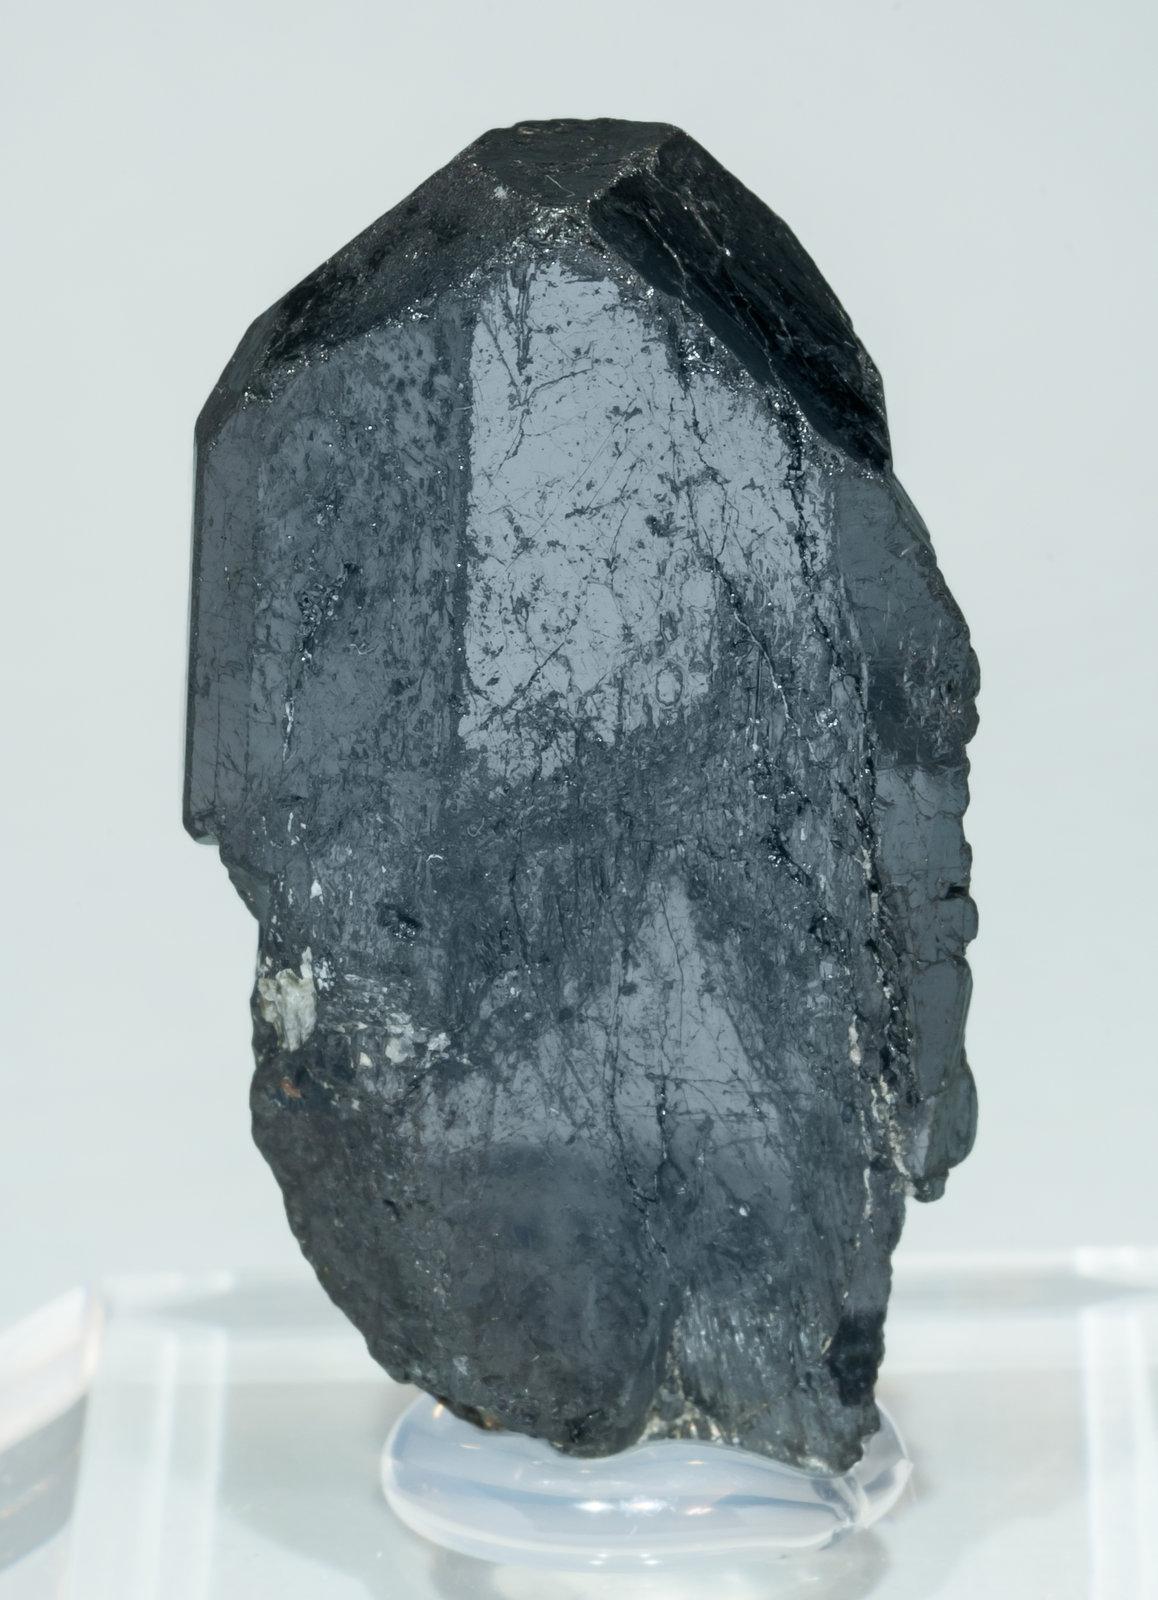 specimens/s_imagesAL4/Columbite-MG56AL4f.jpg